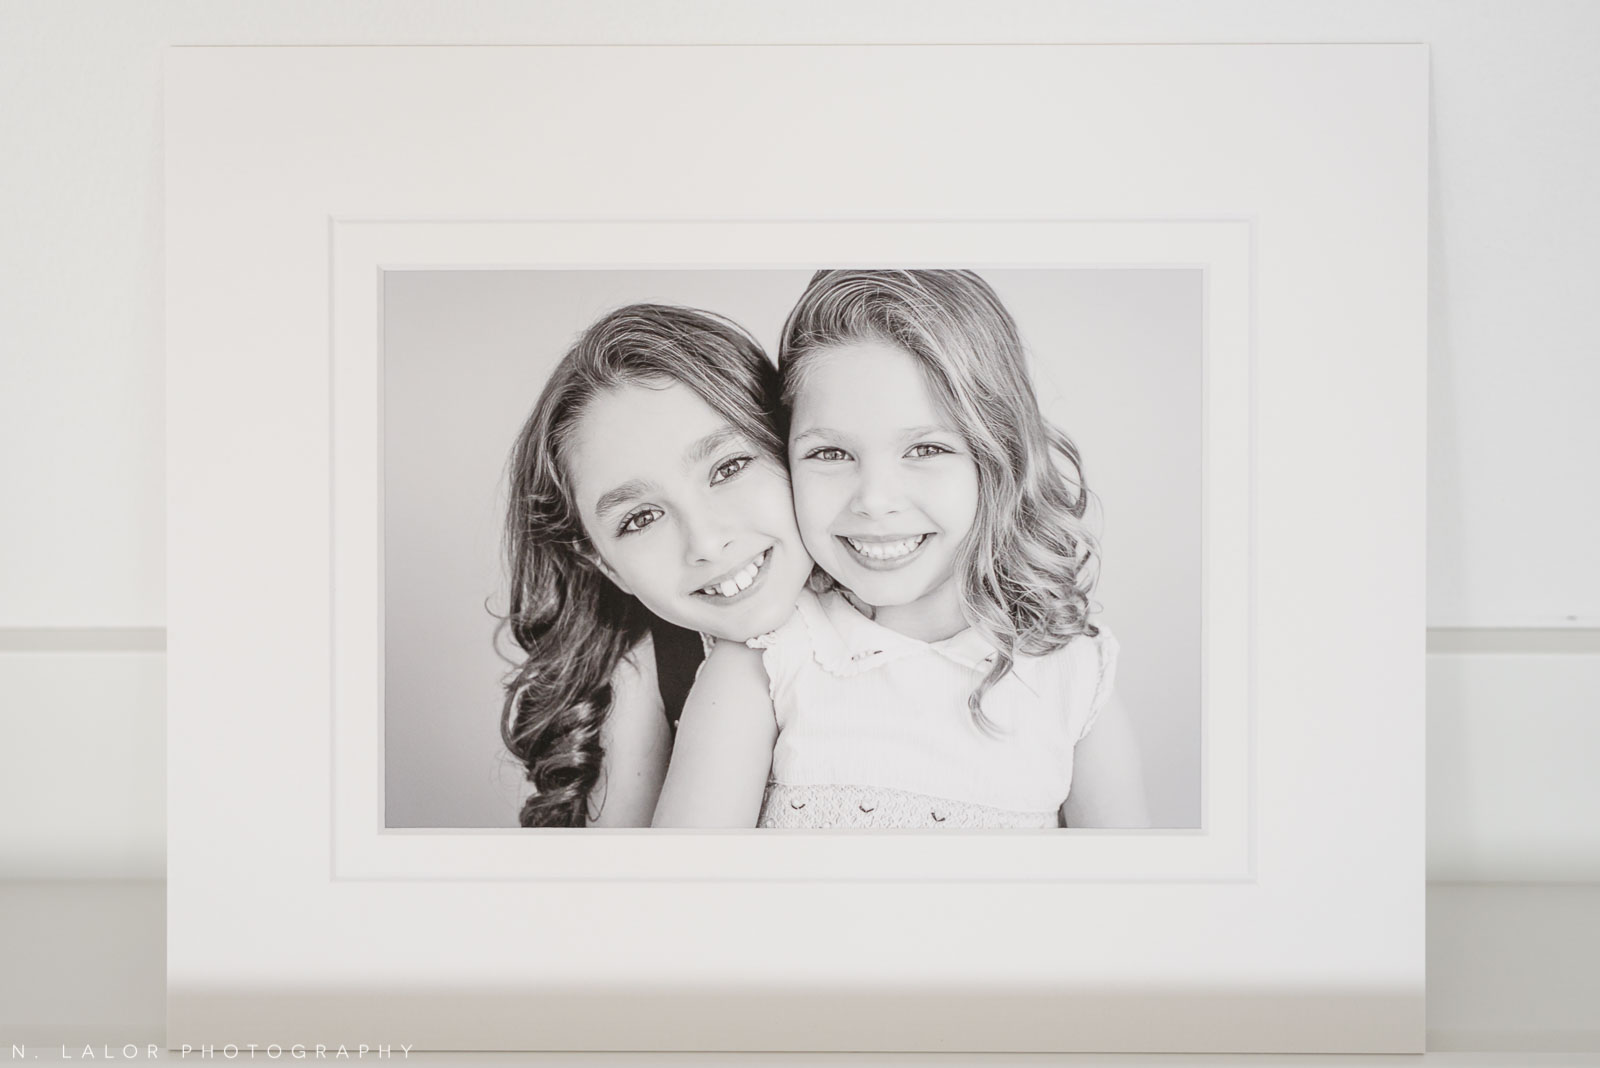 Sisters. Family photoshoot by N. Lalor Photography in Greenwich, Connecticut.